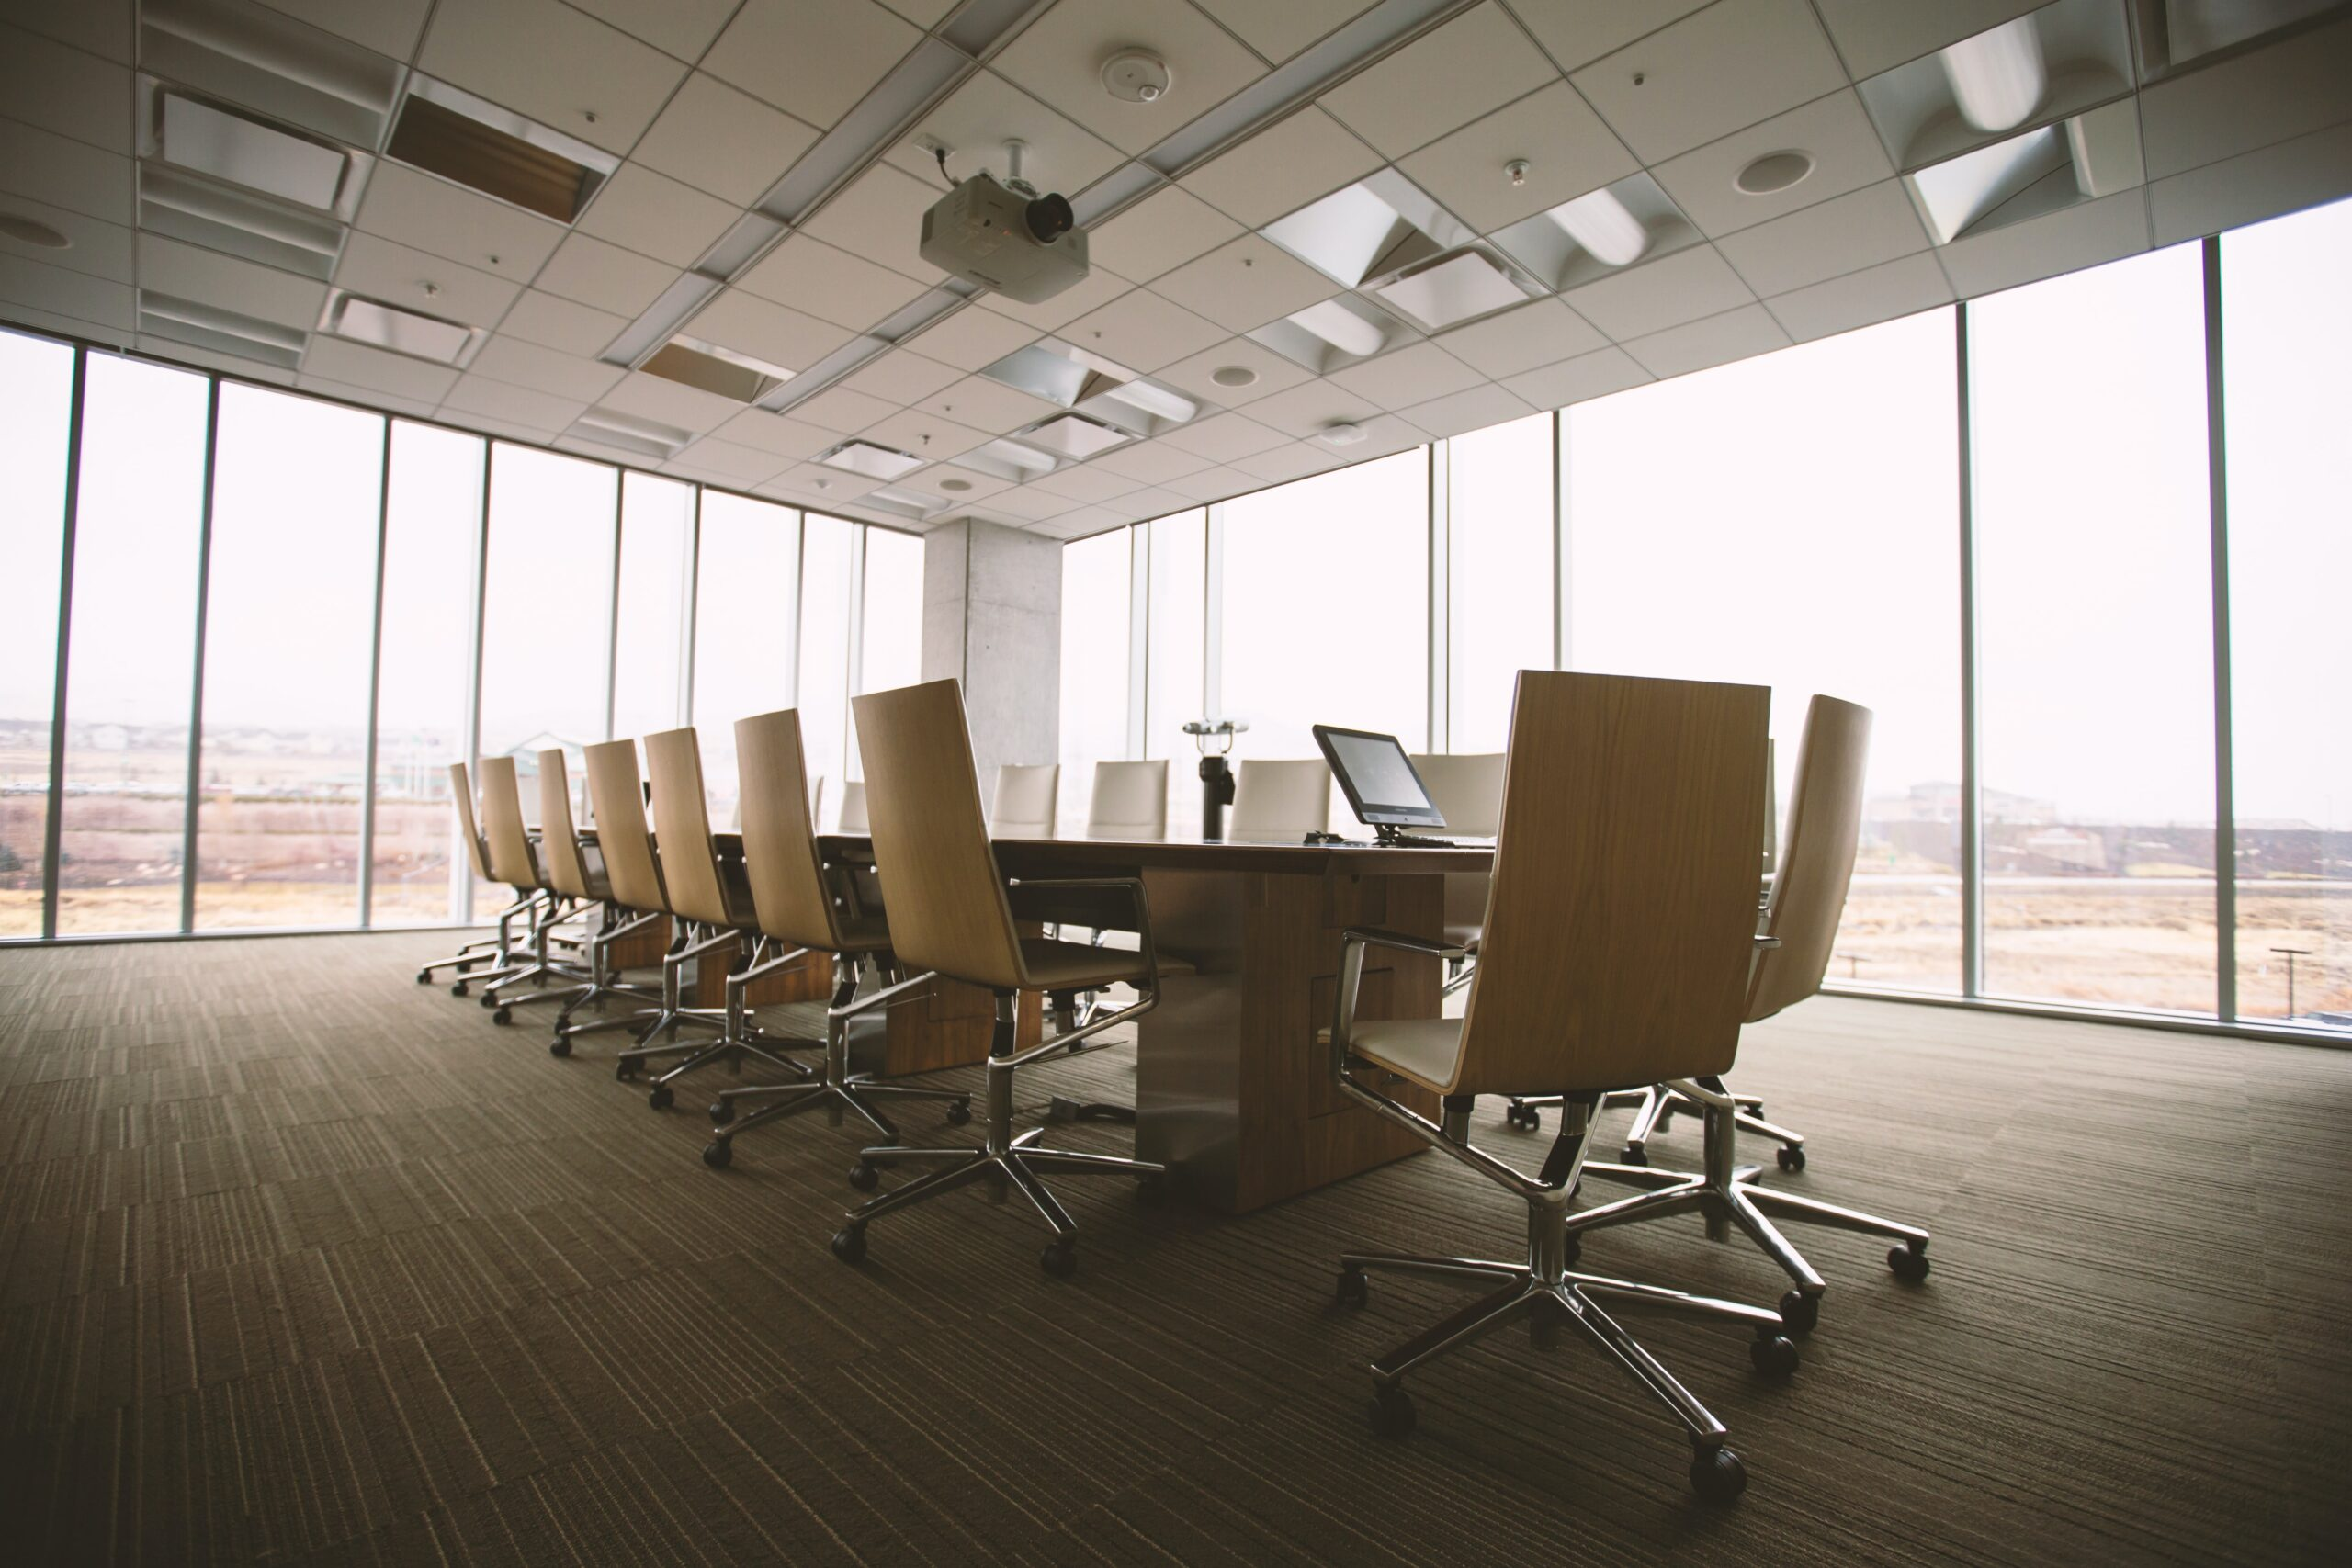 Conference Table - Business Insurance